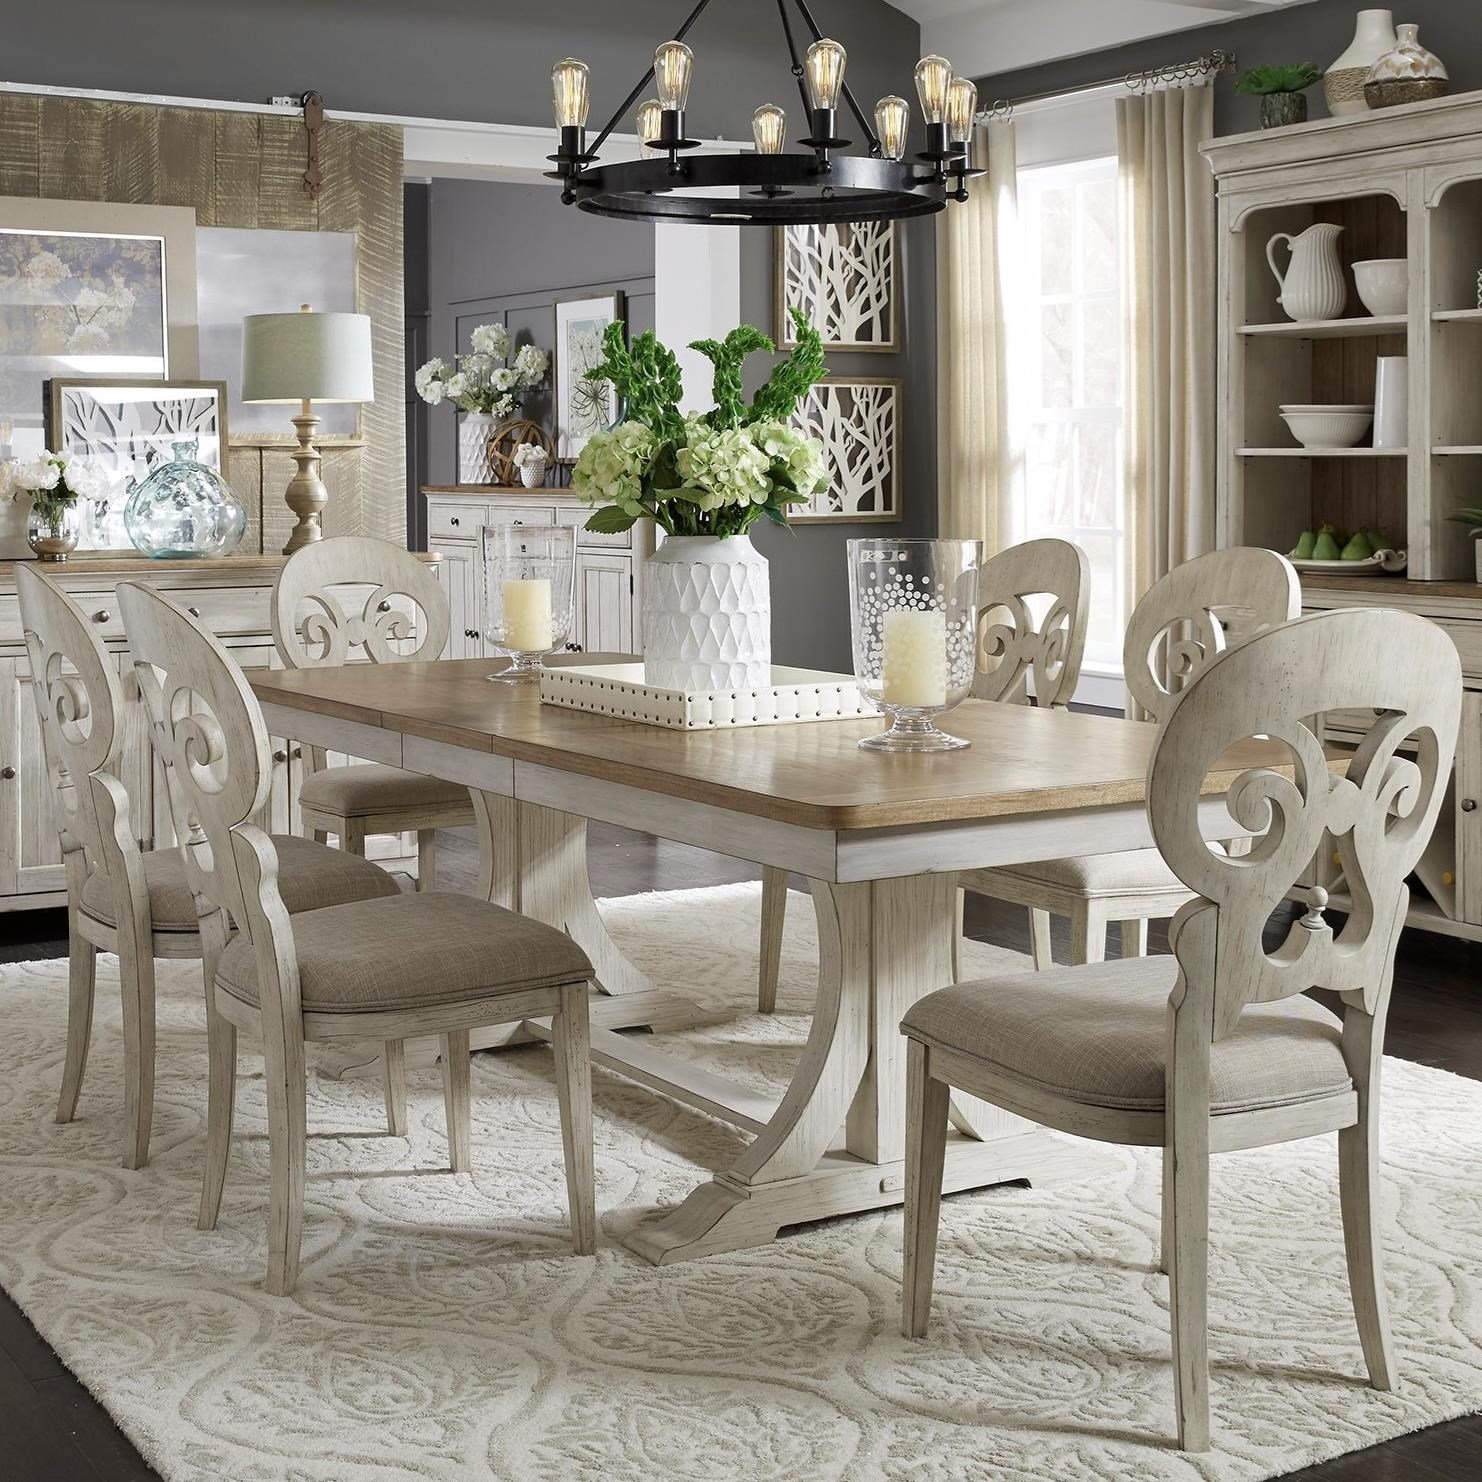 Farmhouse Reimagined 7-Piece Table and Chair Set by Liberty Furniture at Zak's Home